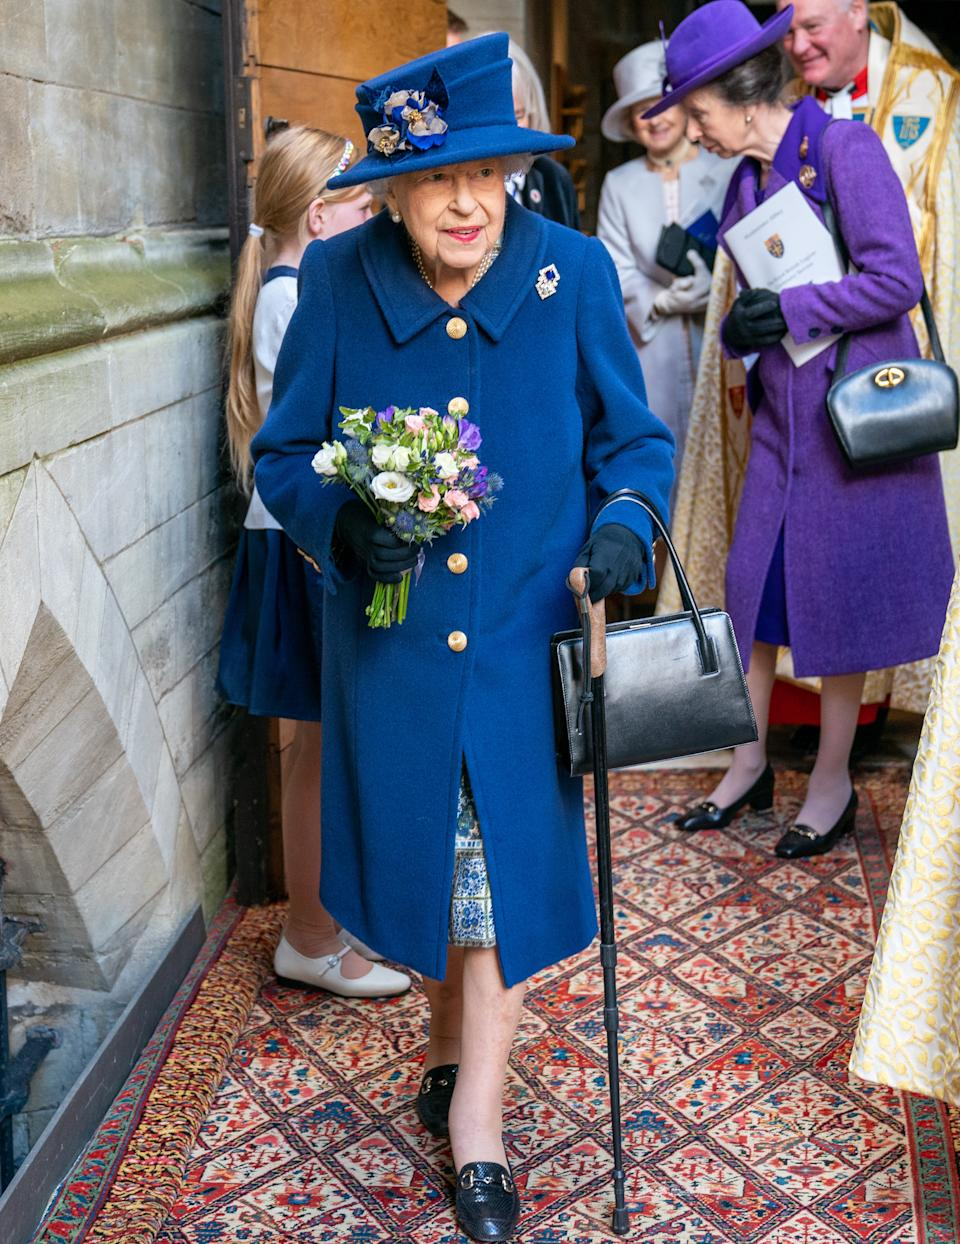 The Queen using walking stick